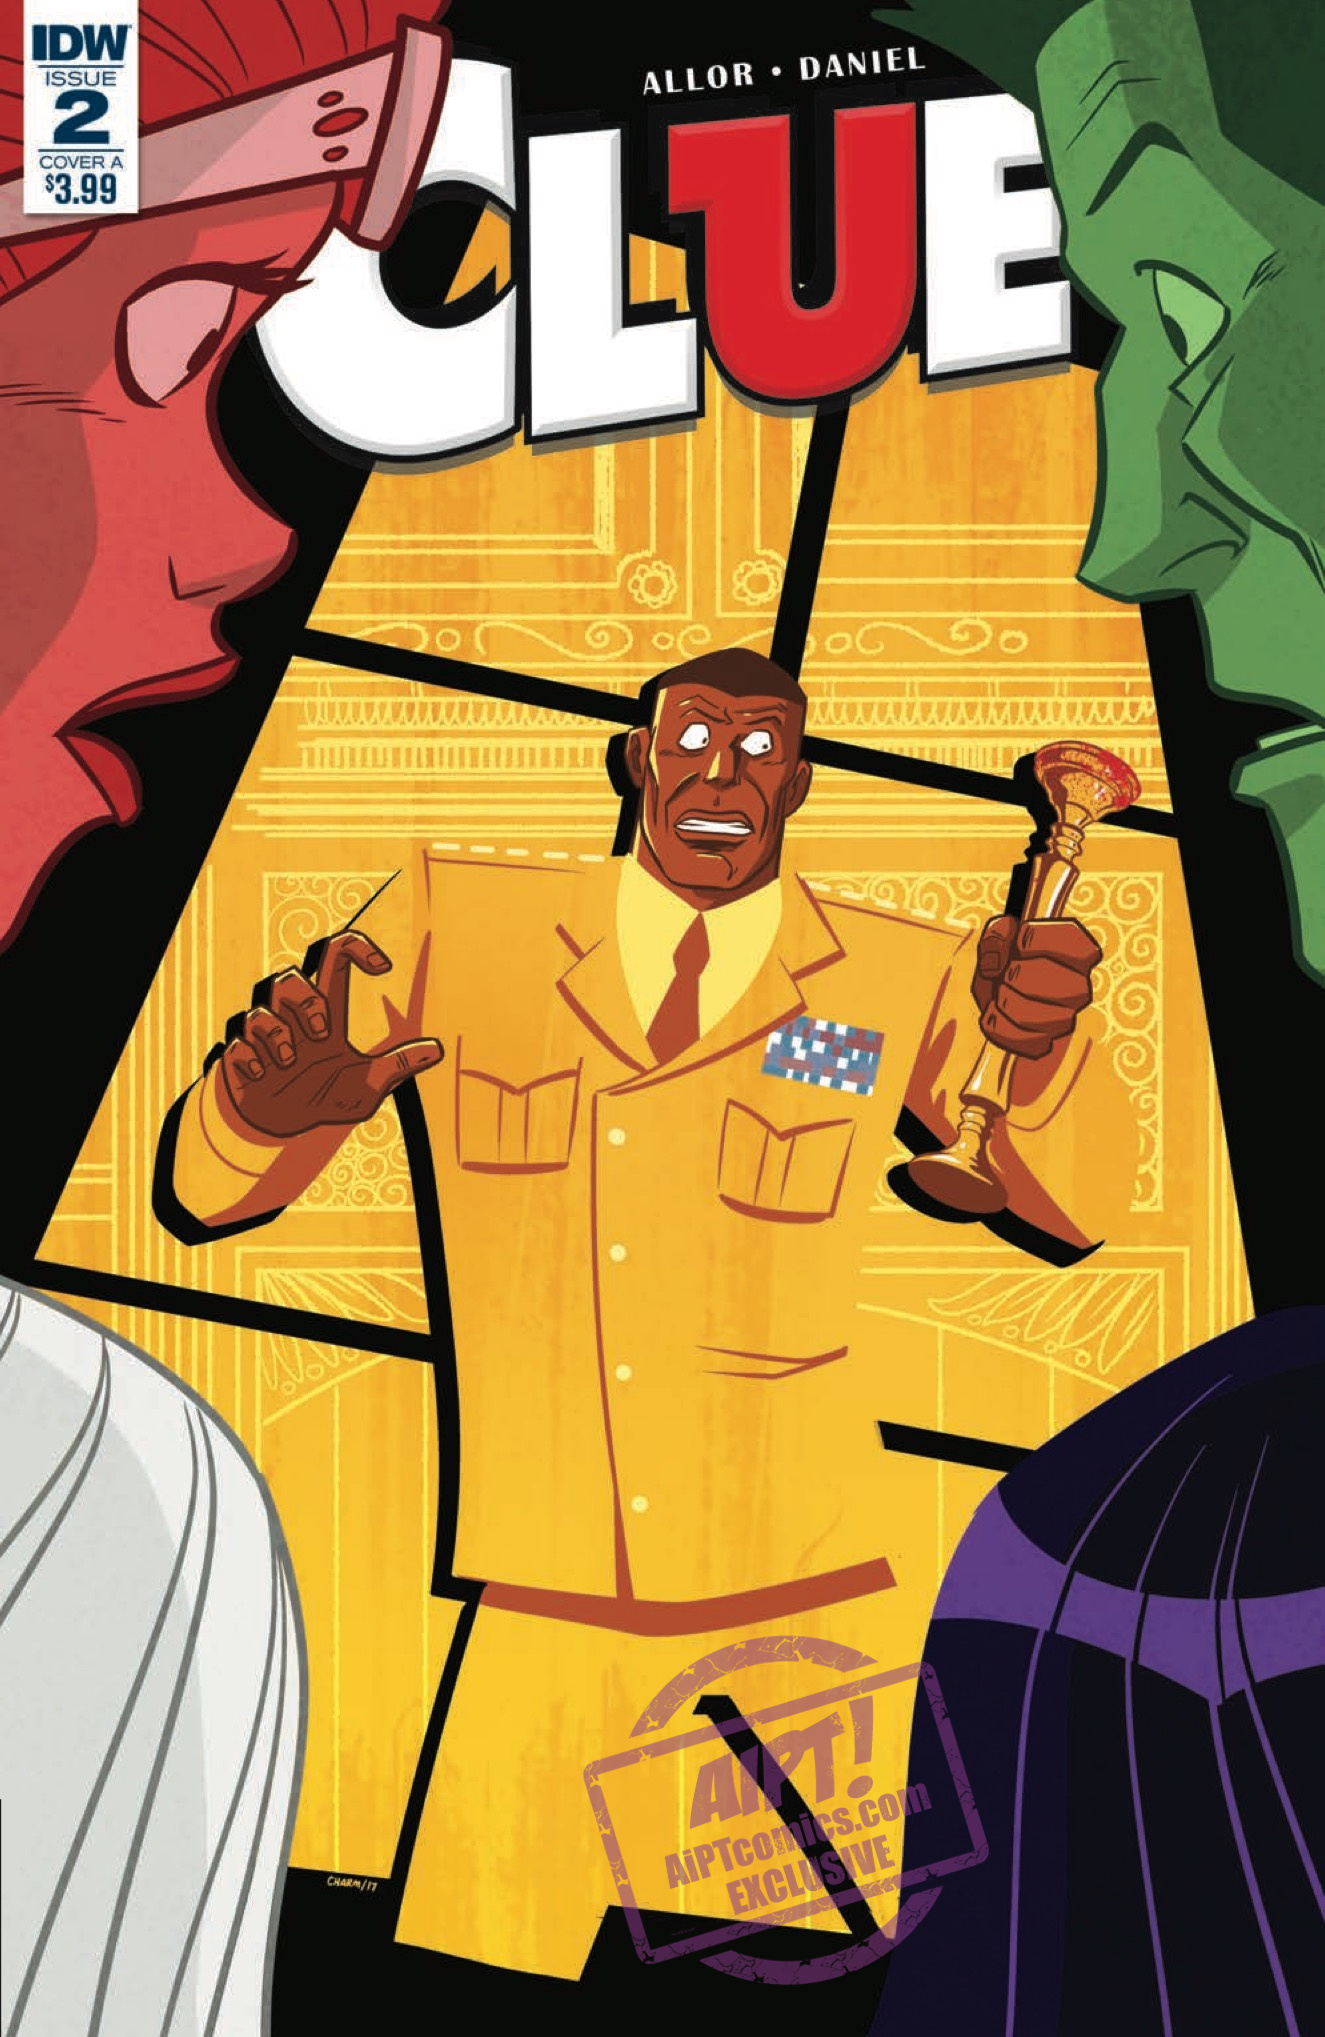 [EXCLUSIVE] IDW Preview: Clue #2